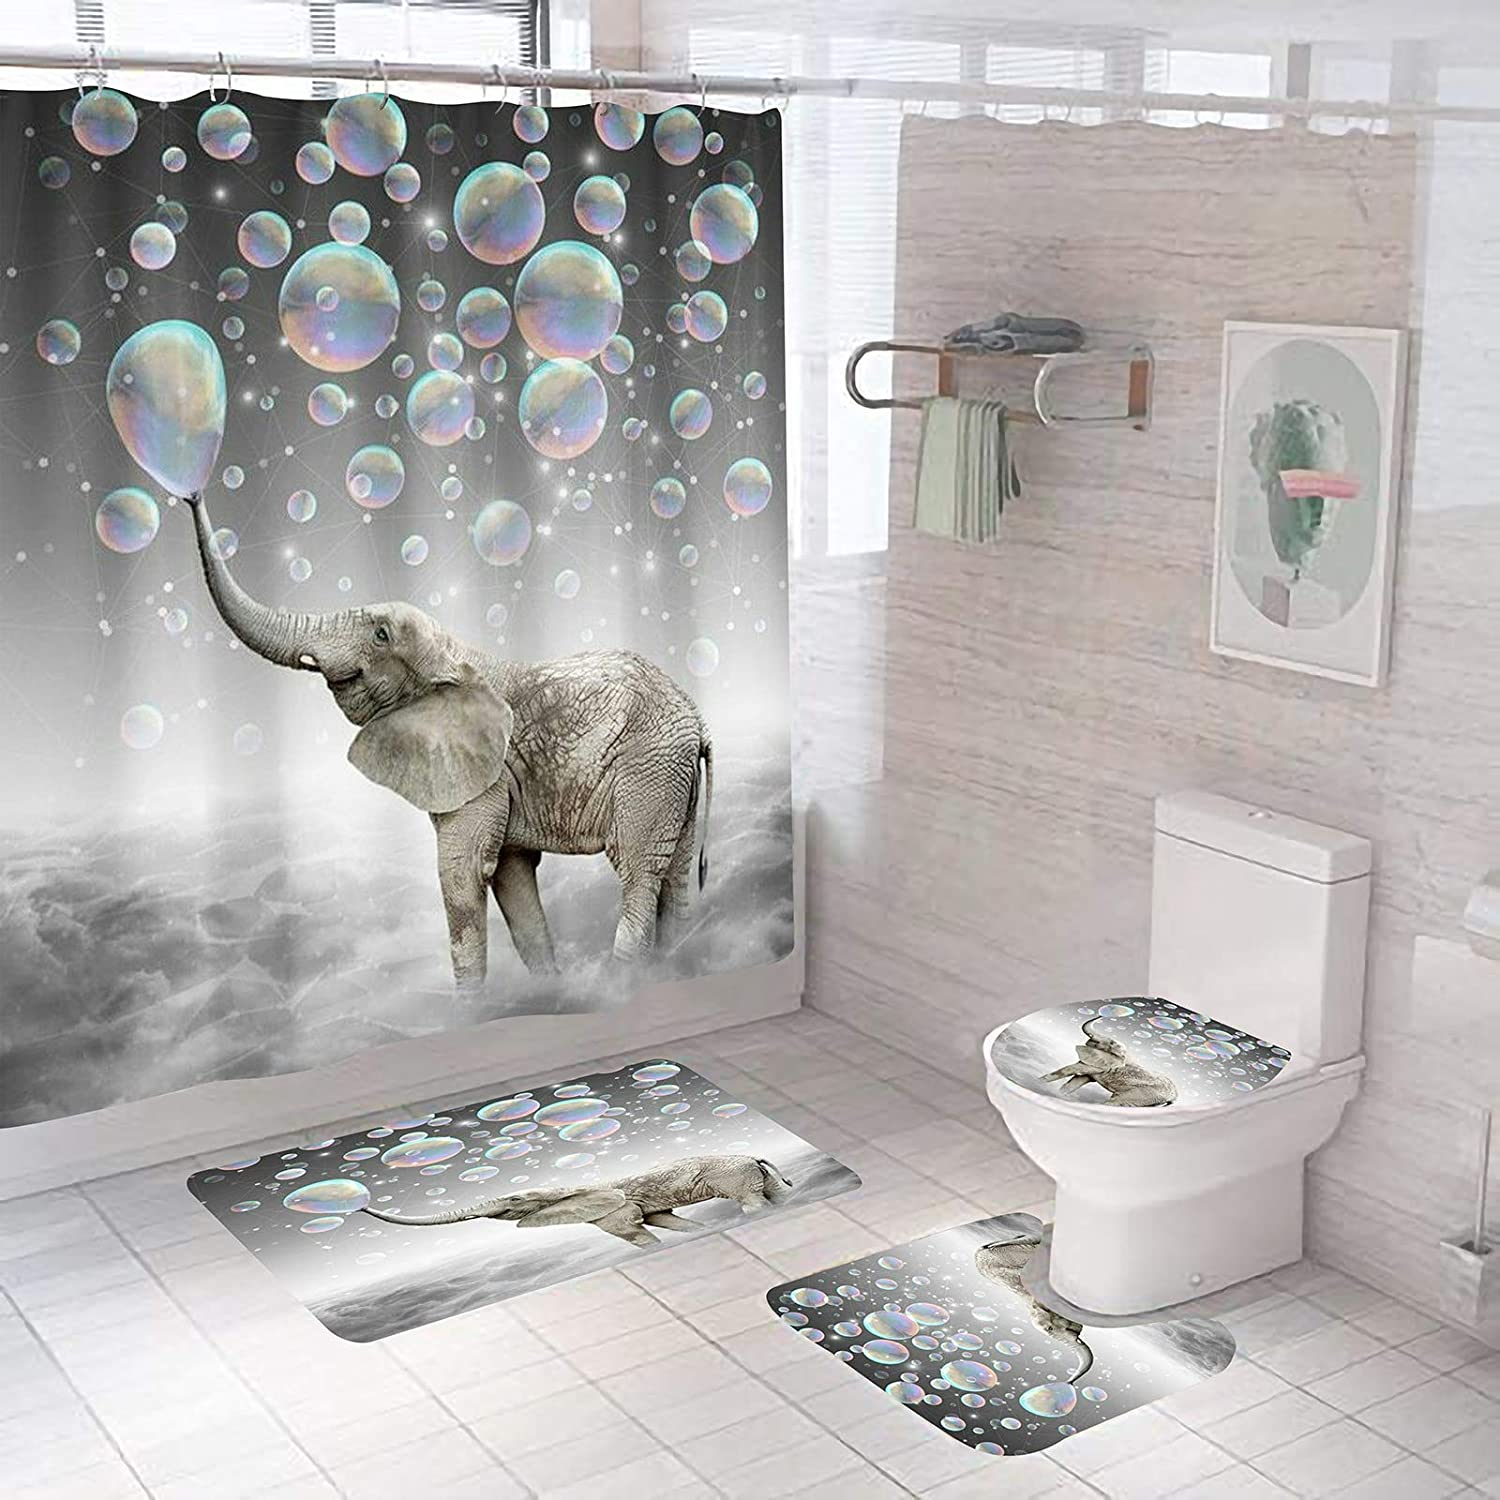 4 Pcs Cute Elephant Blowing Bubbles Shower Curtain Sets with Bathroom Rugs Set,Include Non-Slip Rug,Toilet Lid Cover,Bath Mat,12 Hooks,Waterproof Shower Curtains for Bathroom Accessory Home Decor